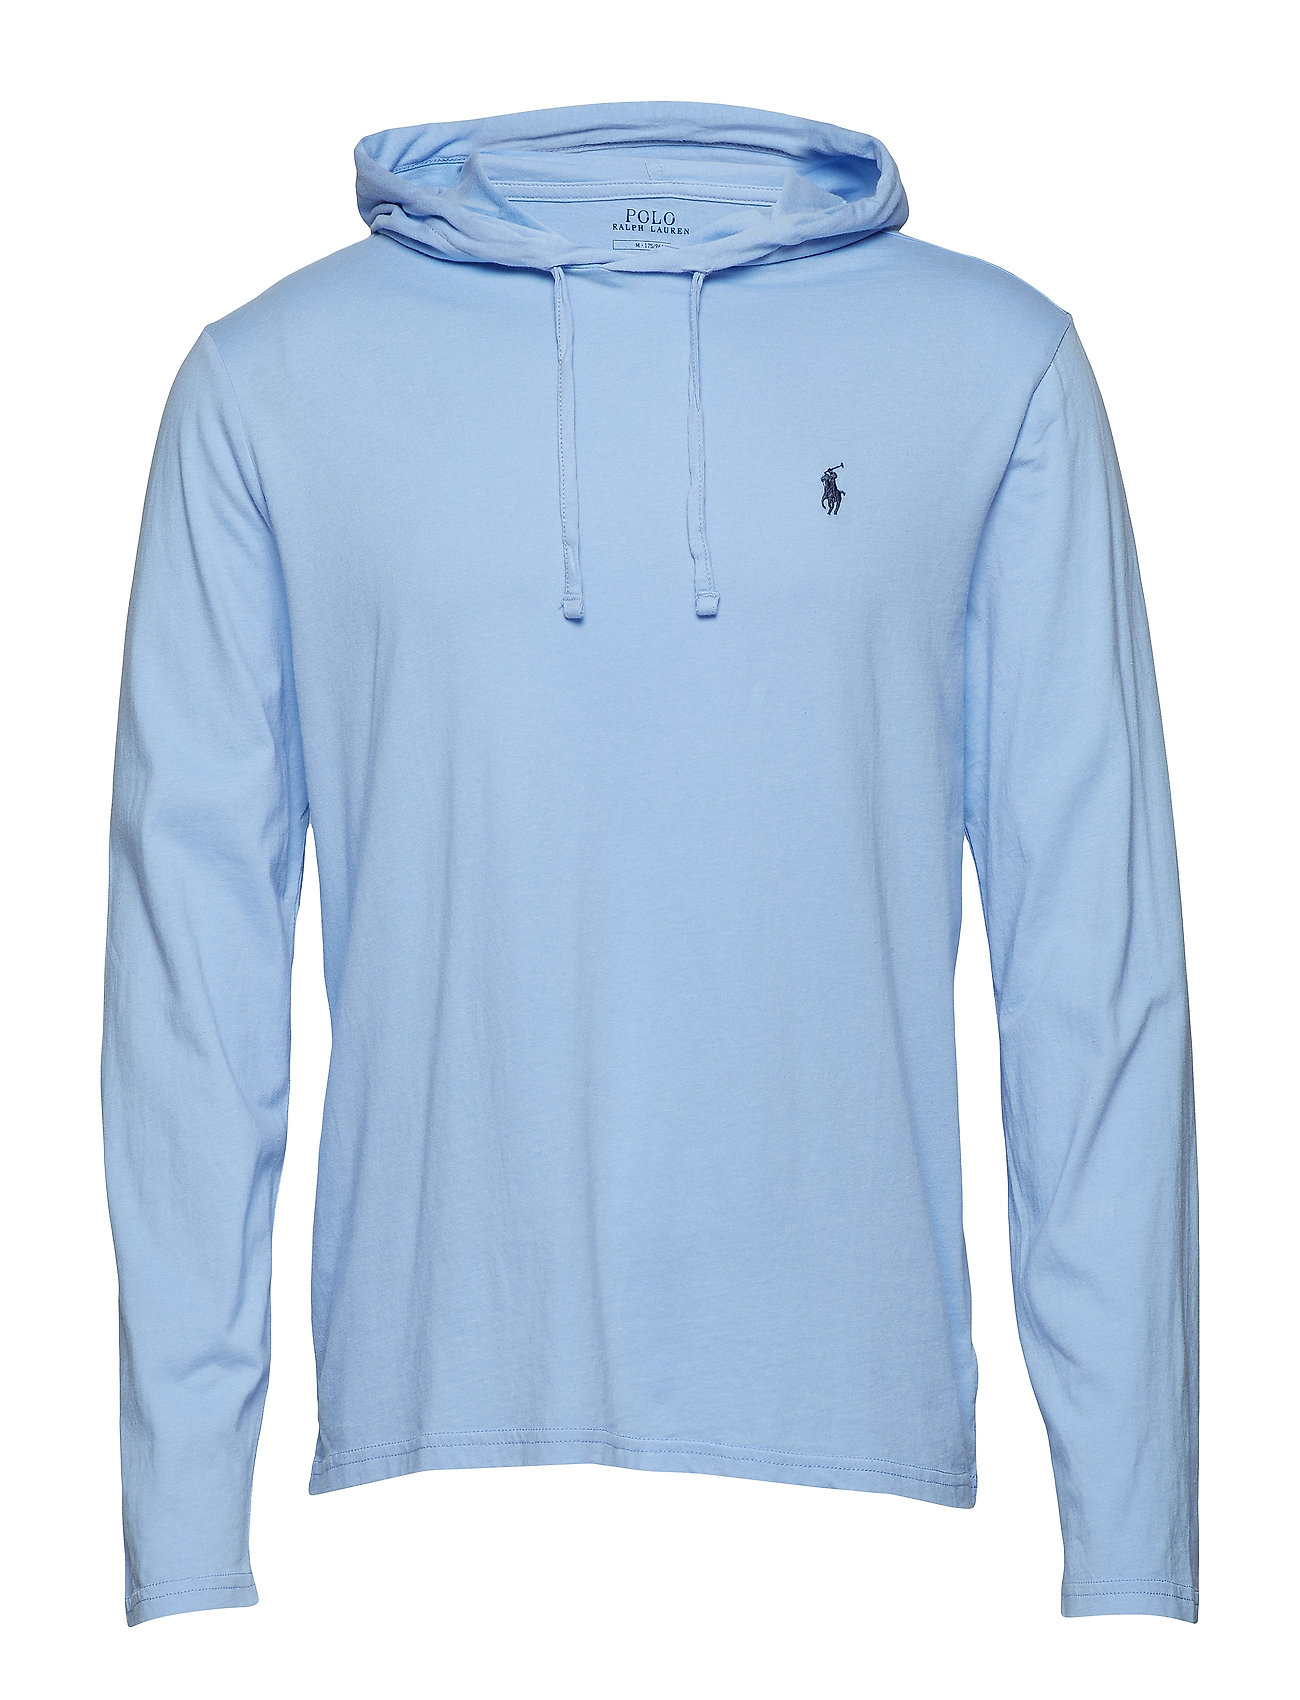 ee5a4a067 Cotton Jersey Hooded T-shirt (Austin Blue) (79.95 €) - Polo Ralph ...